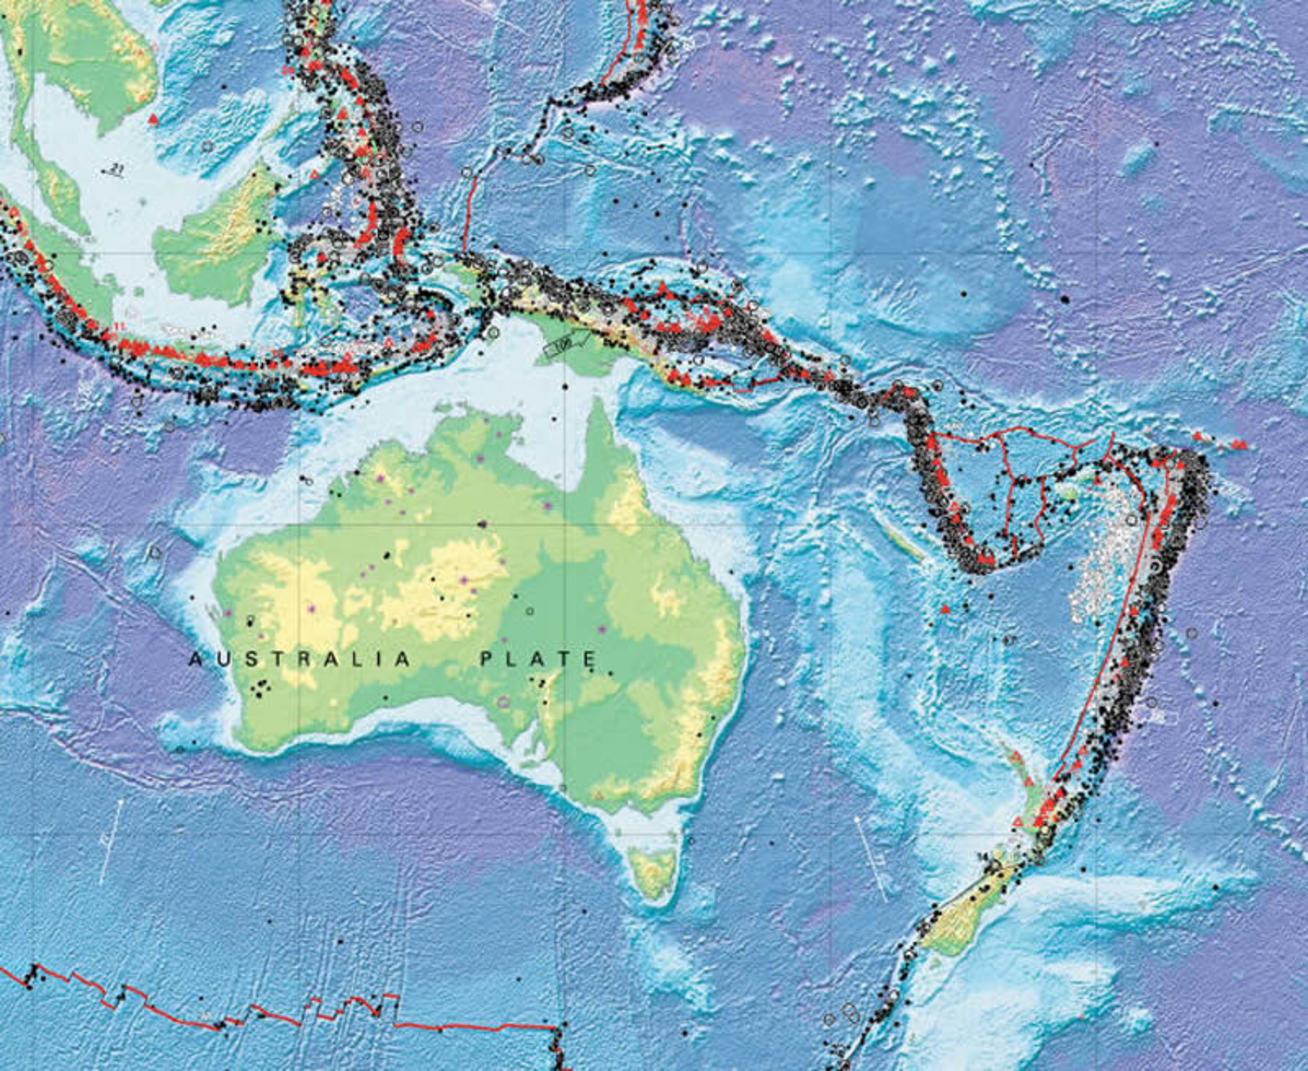 earthquake in australia Australia is generally regarded as a flat and seismically inert continent that is safe from any serious earthquake hazard while this is generally true, we do.